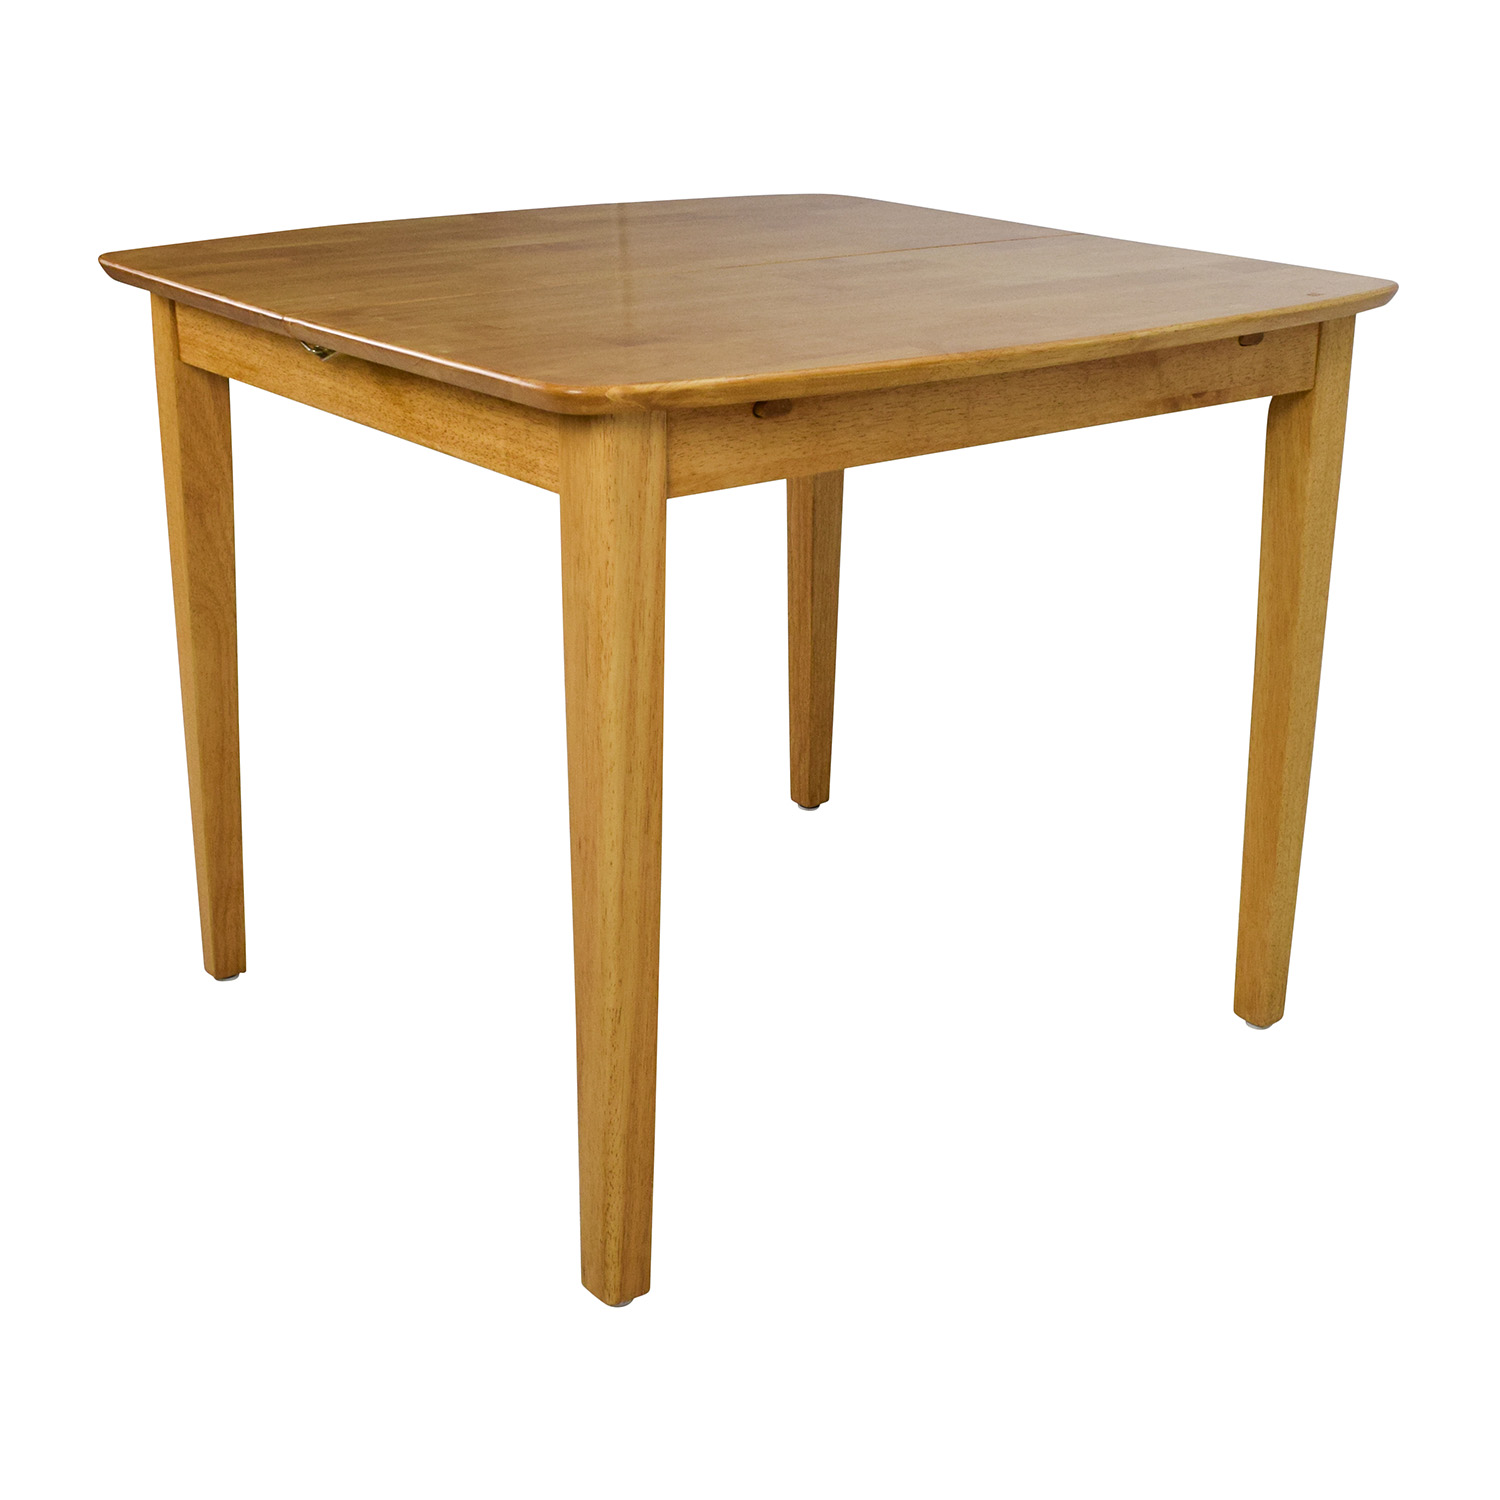 48 off unknown solid wood extension dining table tables for Solid wood dining table